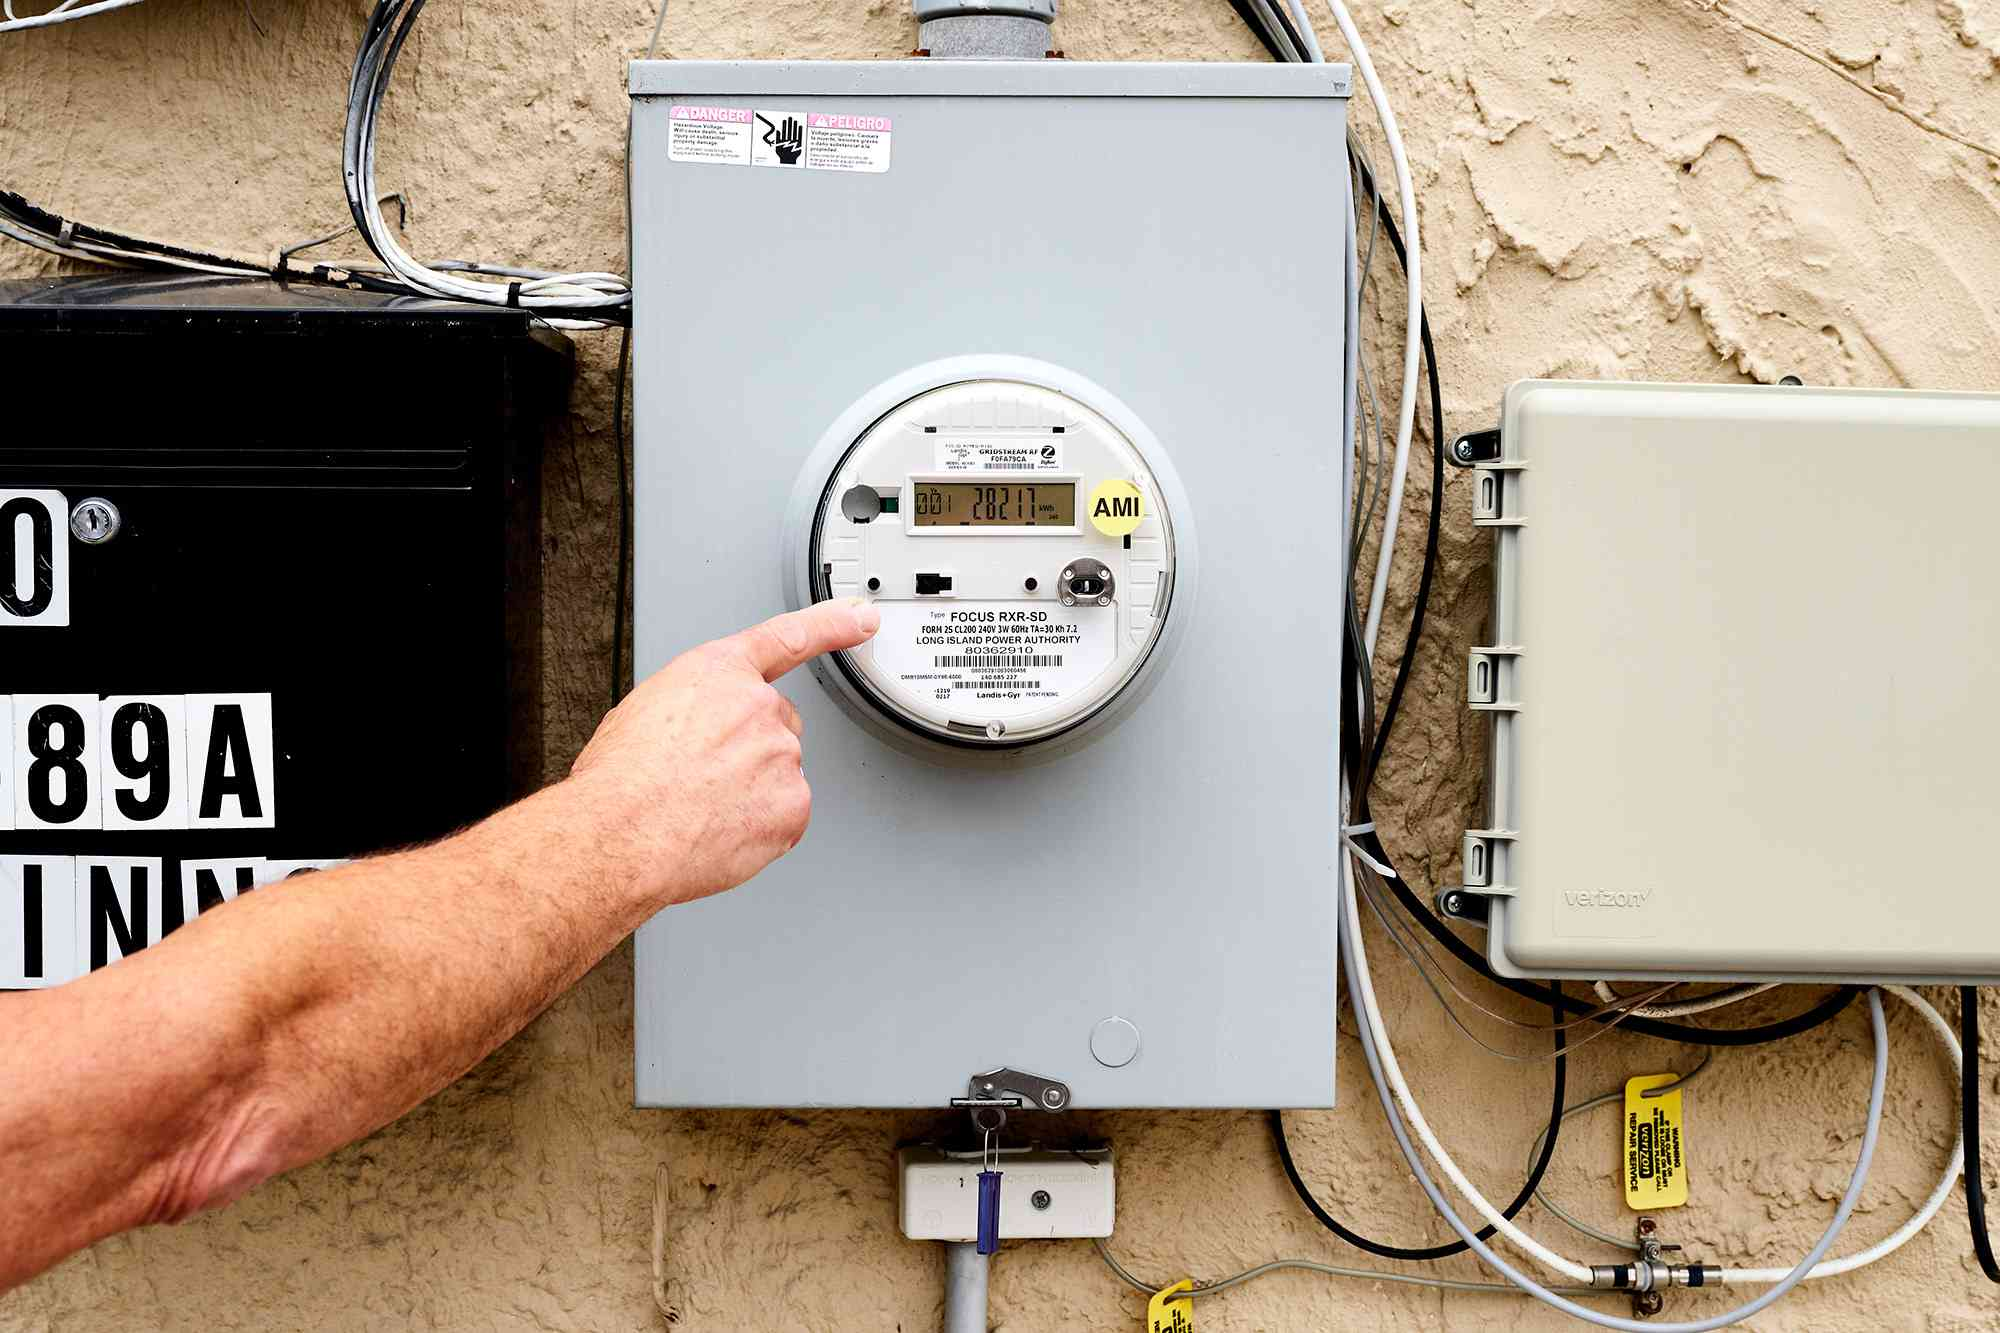 Electrical meter outside of home being inspected